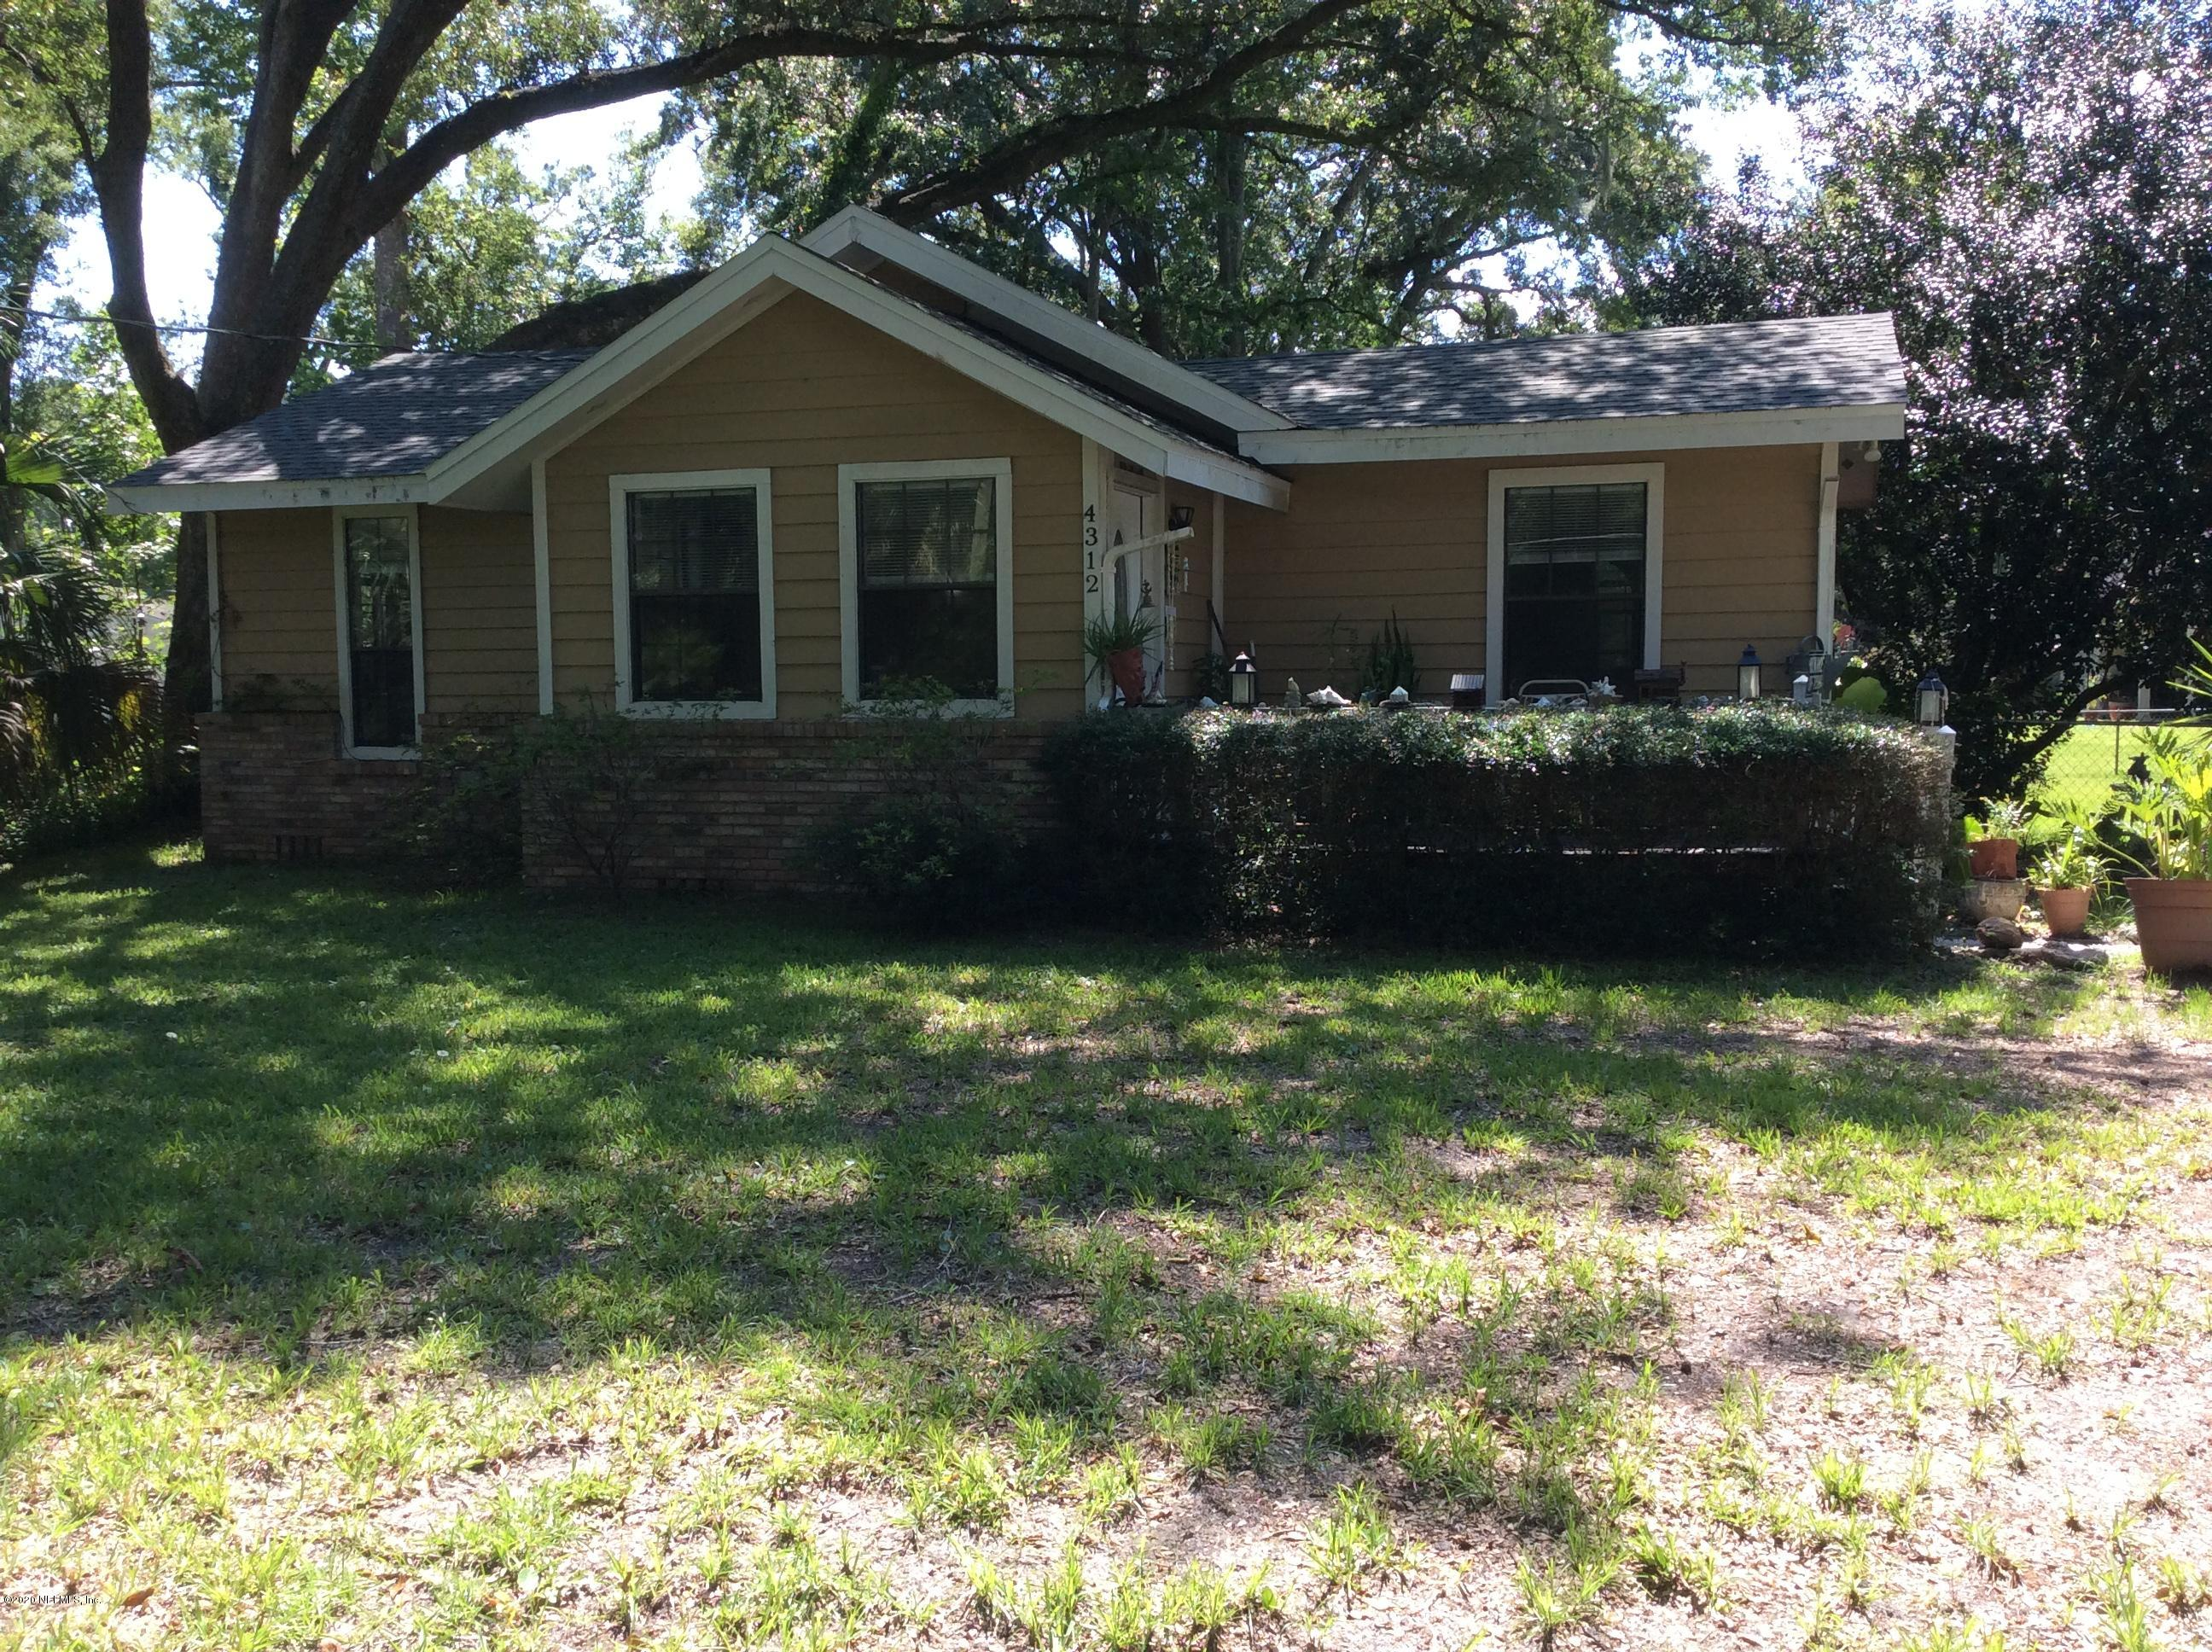 4312 HUDNALL RD, JACKSONVILLE, Florida 32207, 2 Bedrooms Bedrooms, ,1 BathroomBathrooms,Single Family,For Sale,4312 HUDNALL RD,1058772